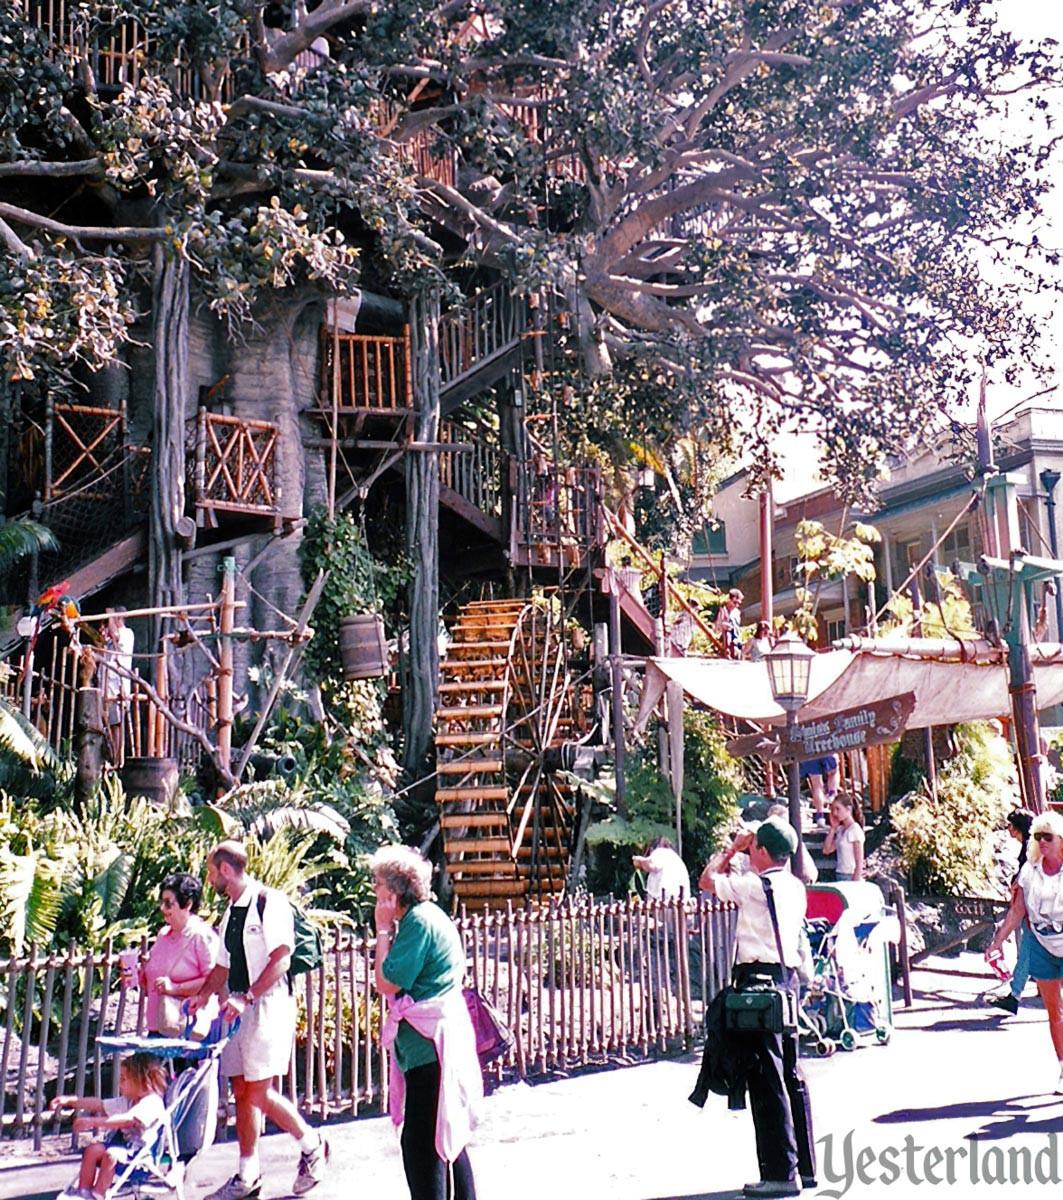 Swiss Family Treehouse, Disneyland